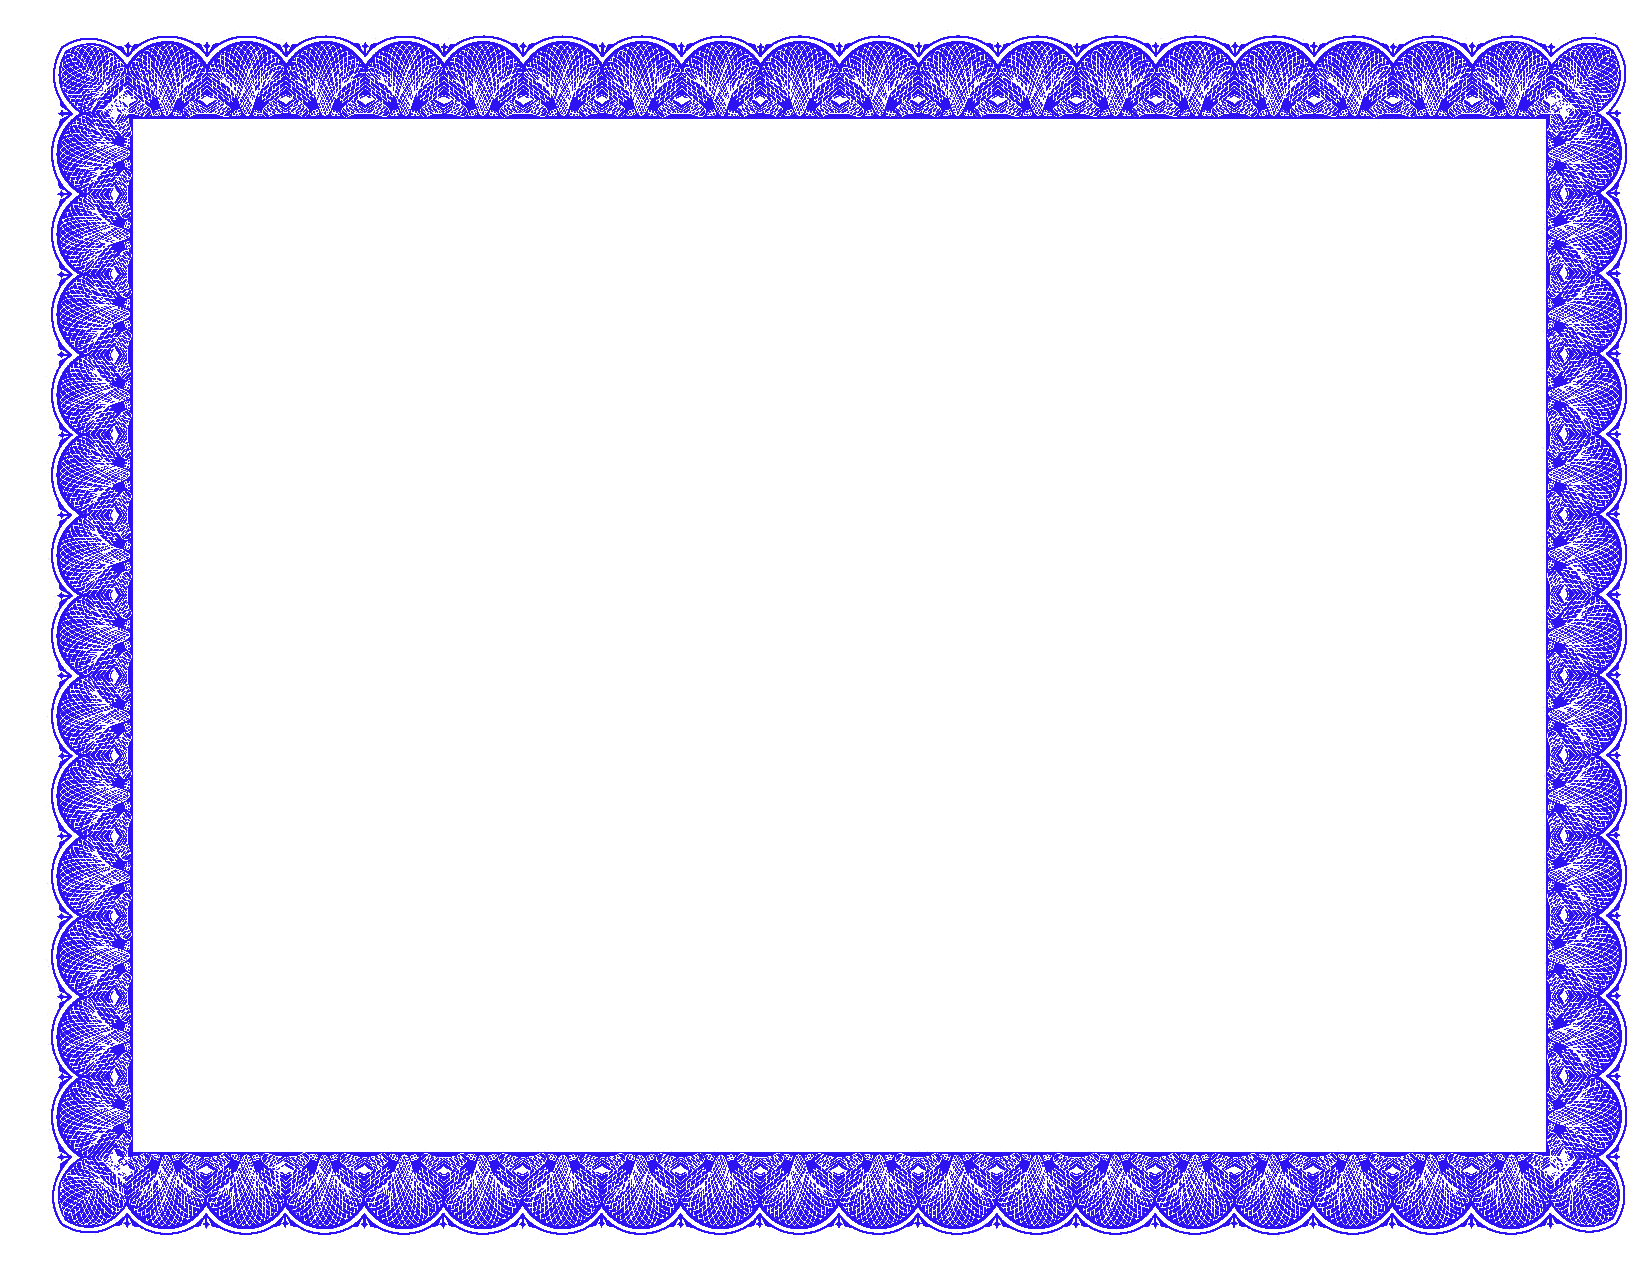 Free star certificate border clipart jpg transparent stock Fancy Borders | PhotoshopForums.com - Blue Fancy Certificate Border ... jpg transparent stock